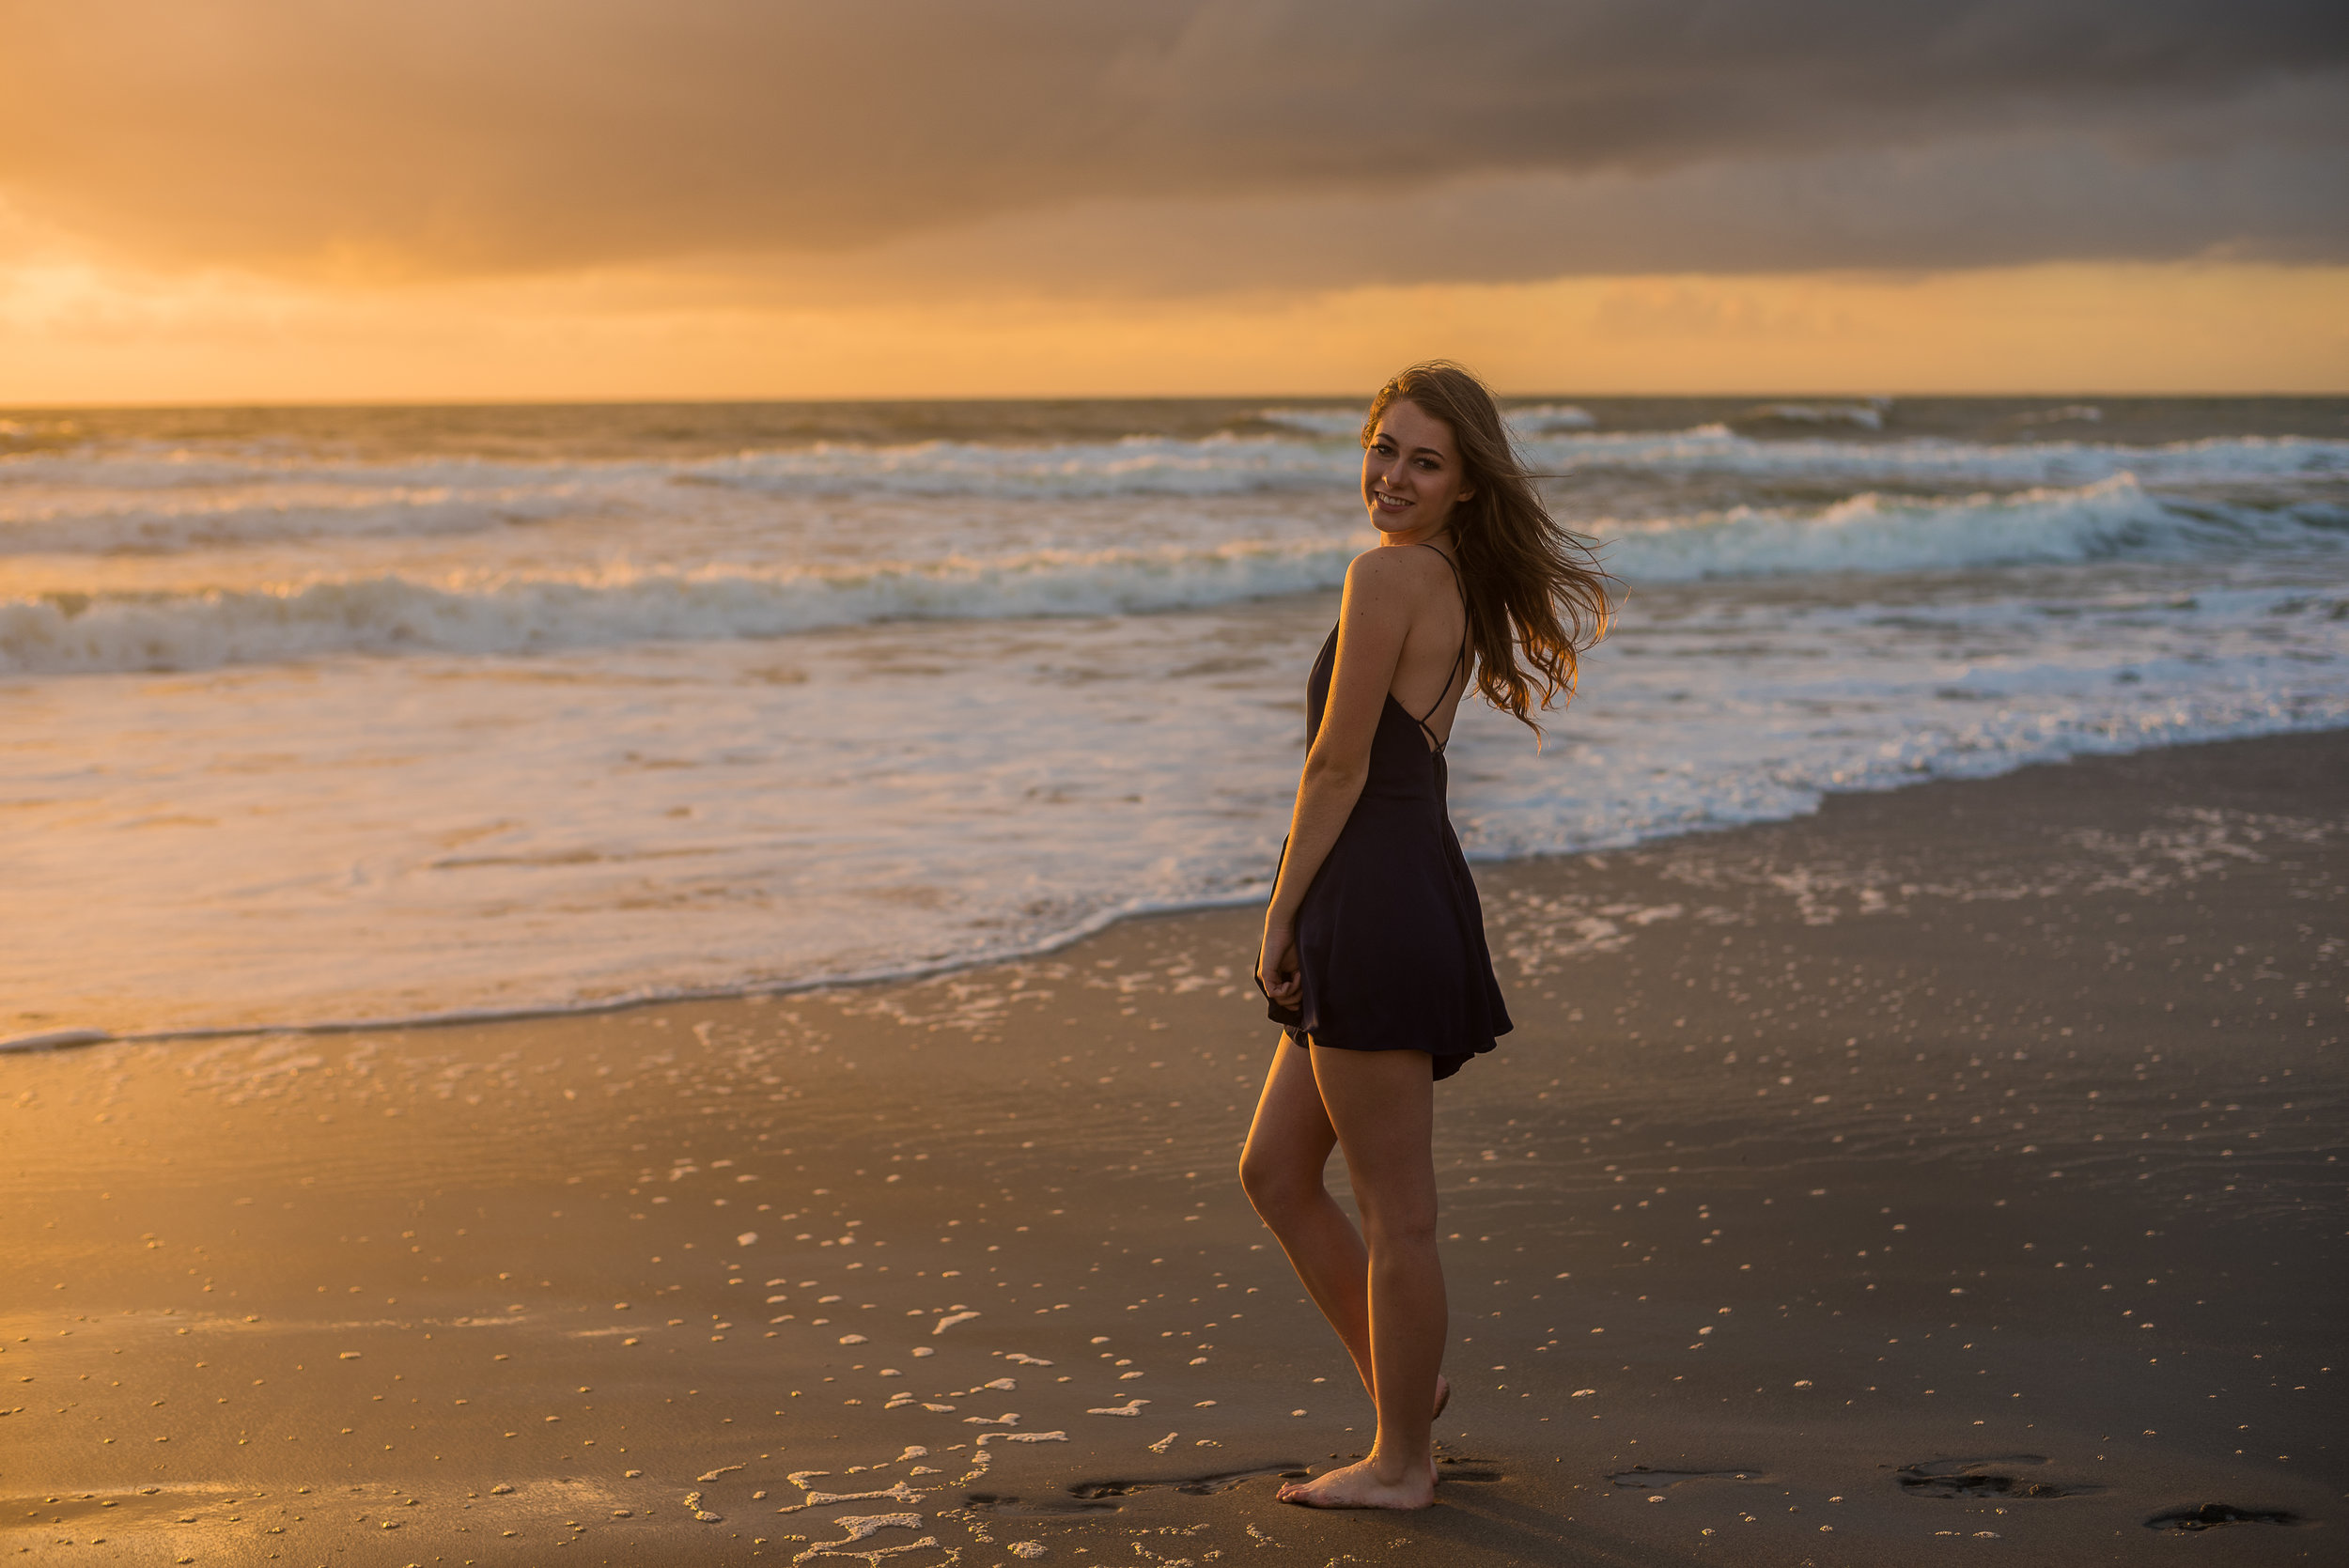 heather-senior-picture-sunrise-1-10.jpg